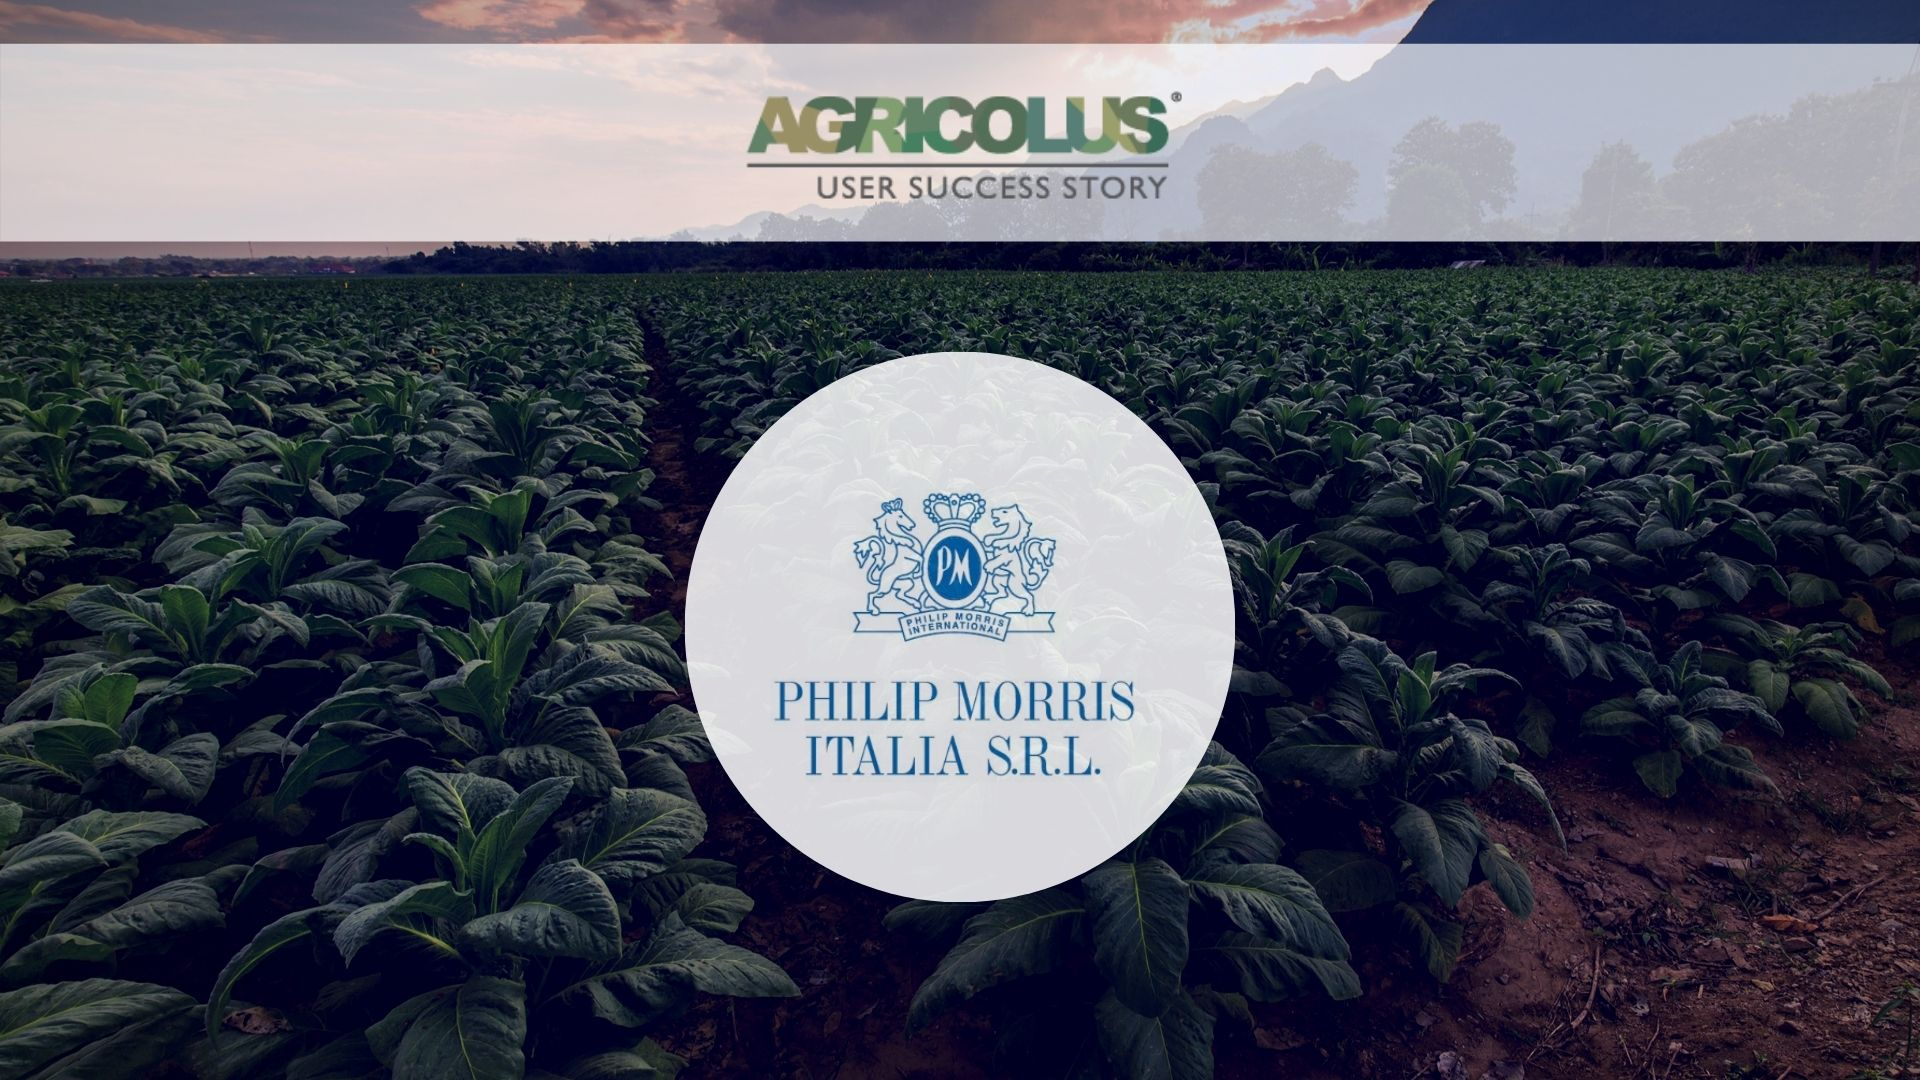 #Agricolus success cases: Philip Morris Italy and the commitment for sustainability